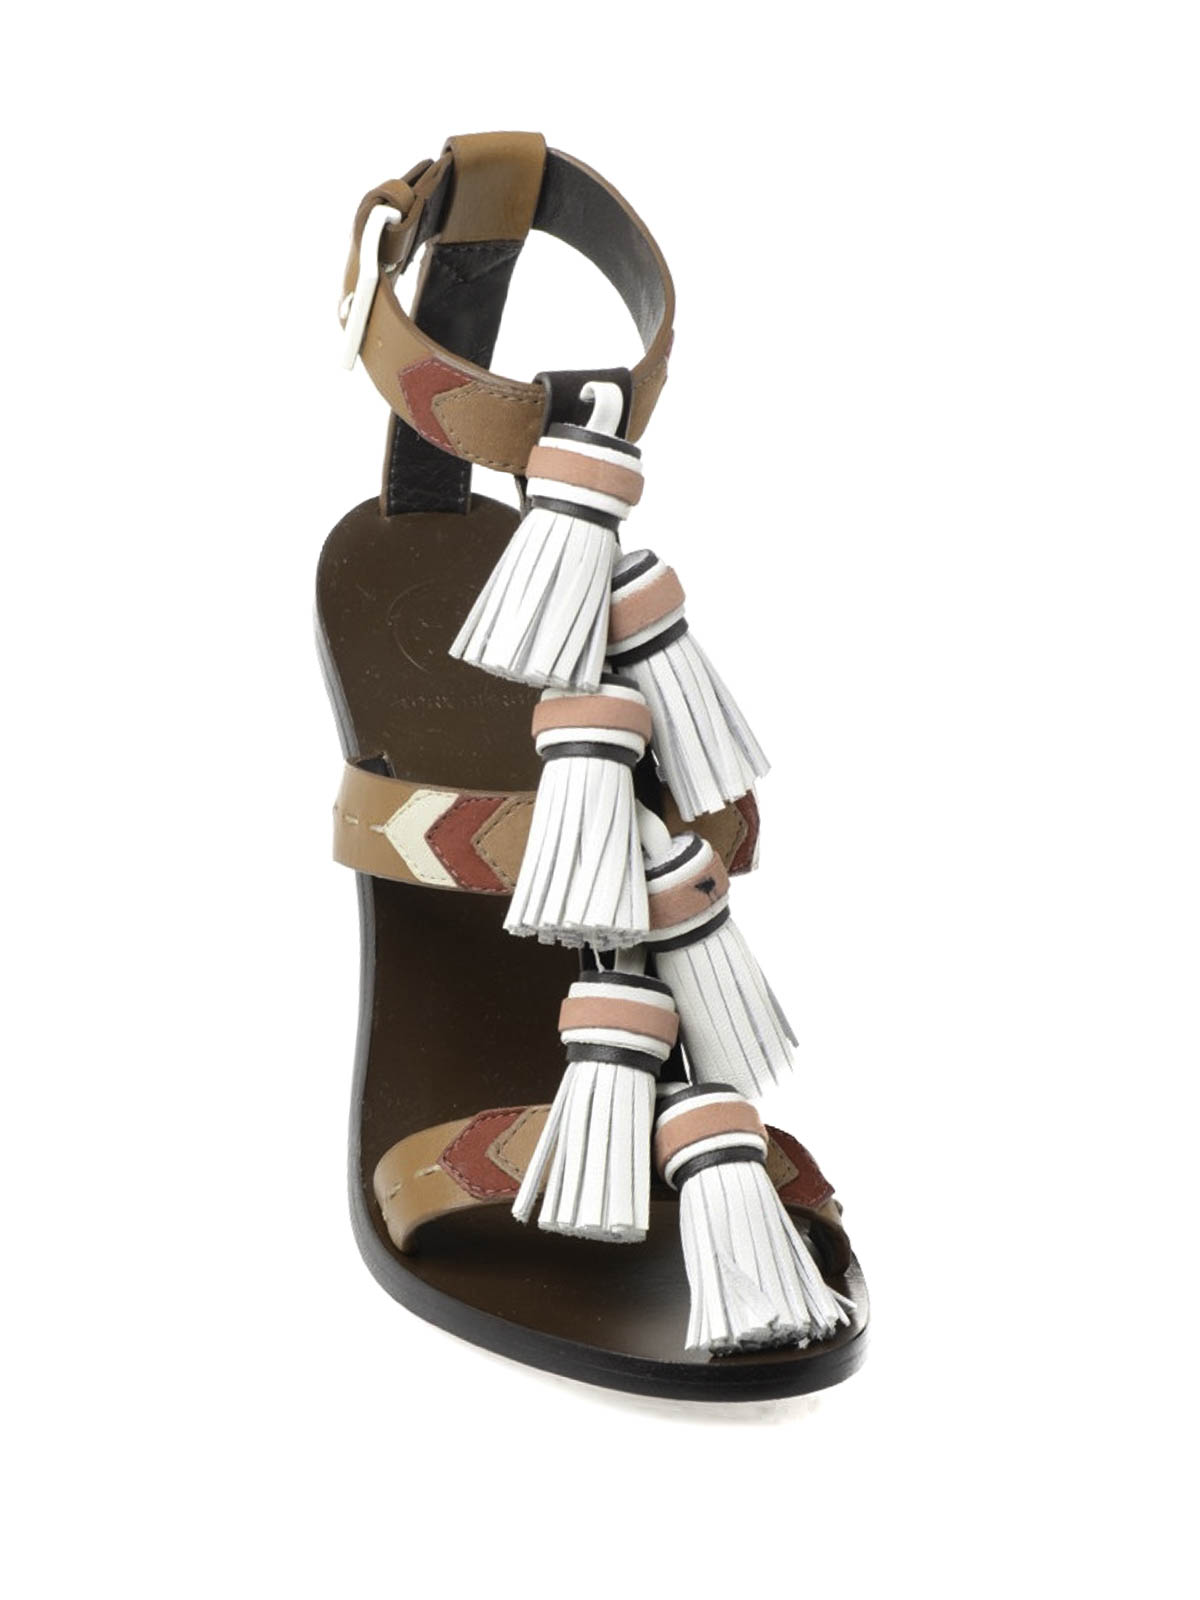 a4bff341f9f4ea Tory Burch - Weaver high sandals with tassels - sandals - 51158683 242